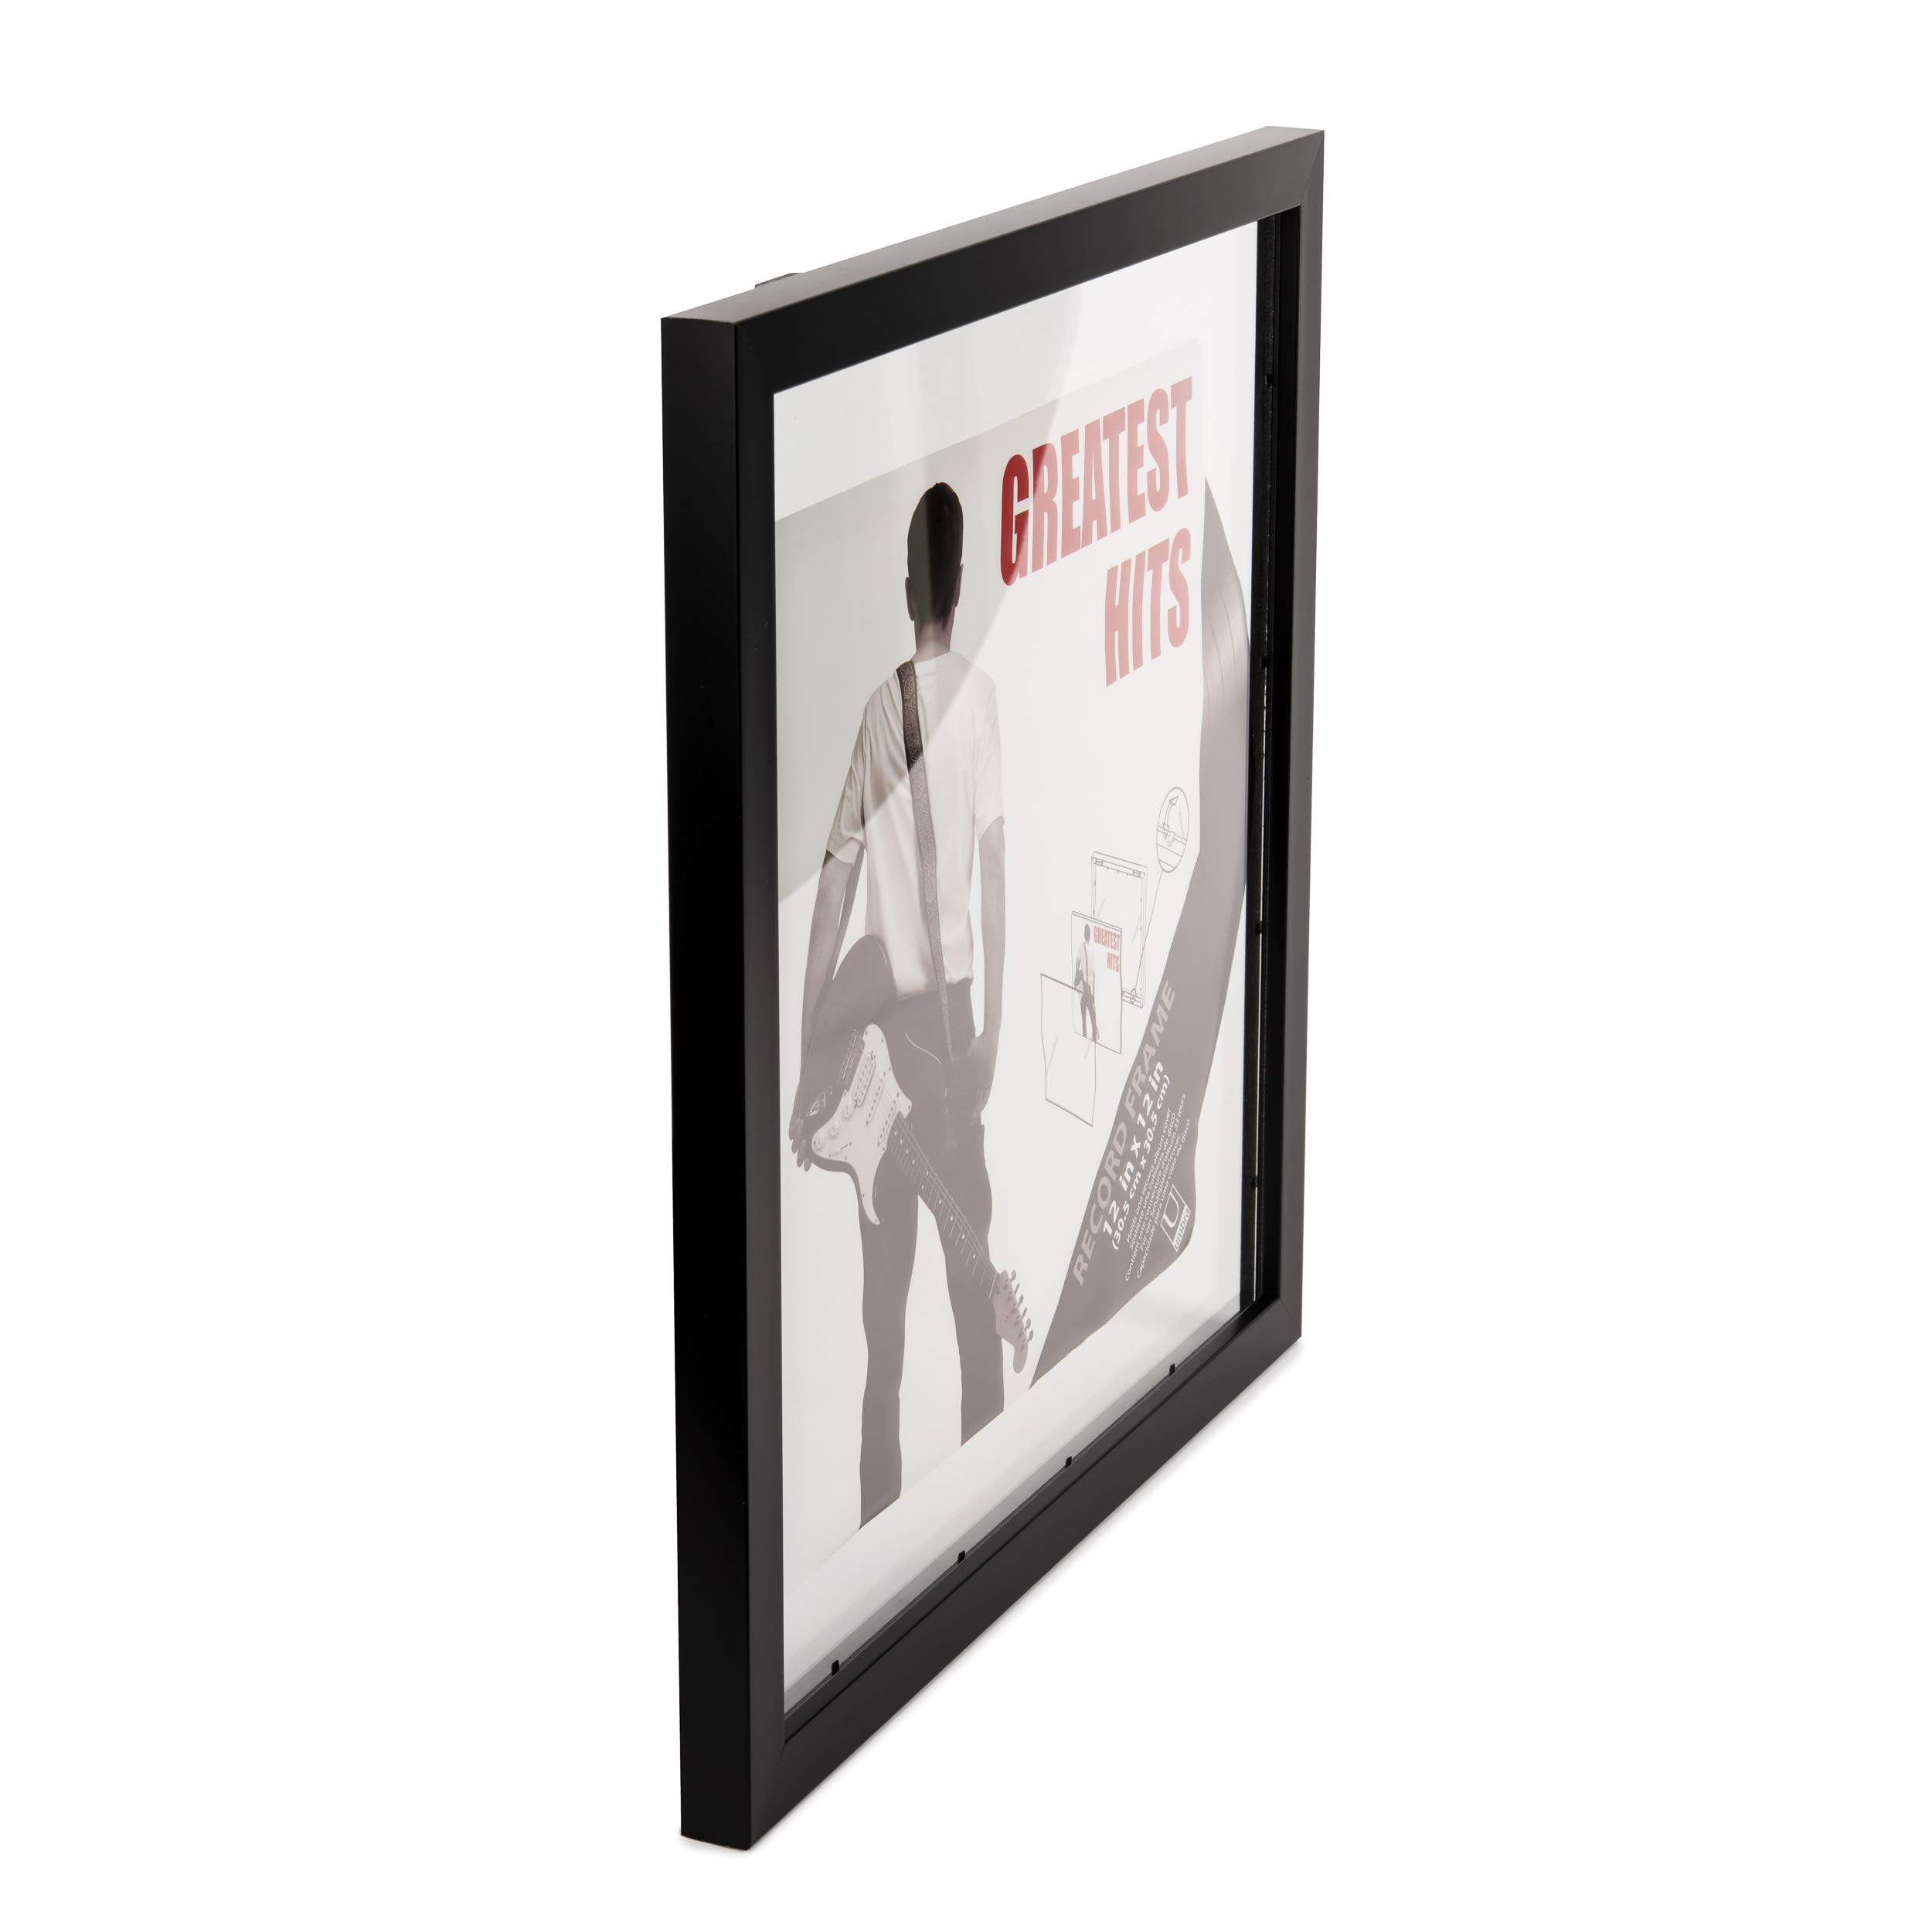 Umbra Record Album Frame 14-1/2x14-1/2-Inch, Modern Picture Frame Designed to Display a Floating 12-Inch by 12-Inch Album Cover by Umbra (Image #7)